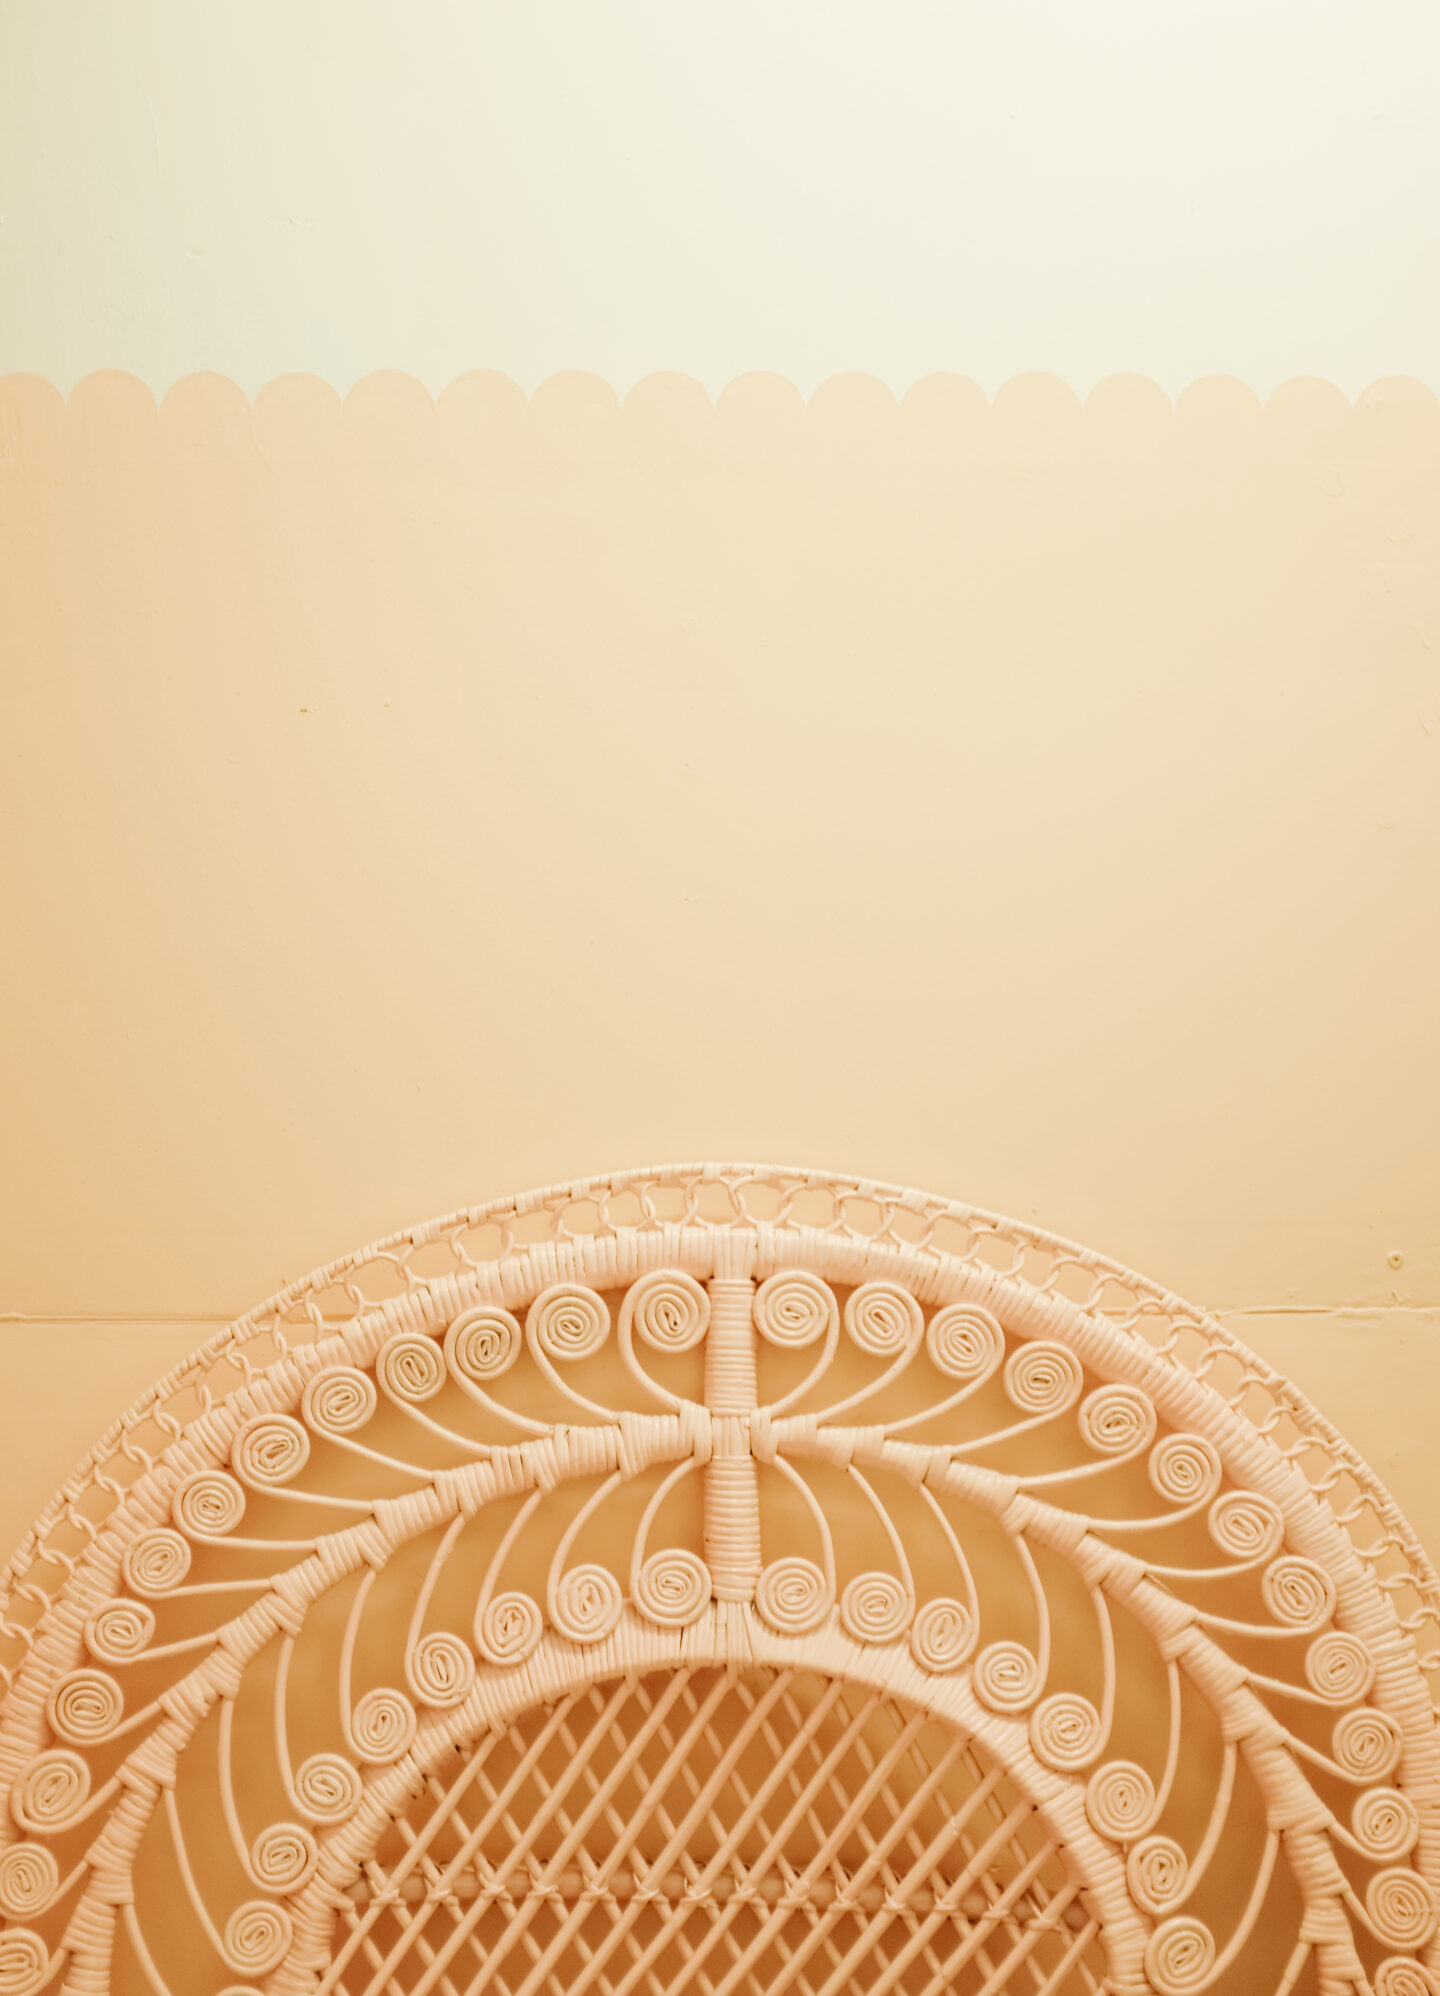 Scalloped wall tutorial in easy steps